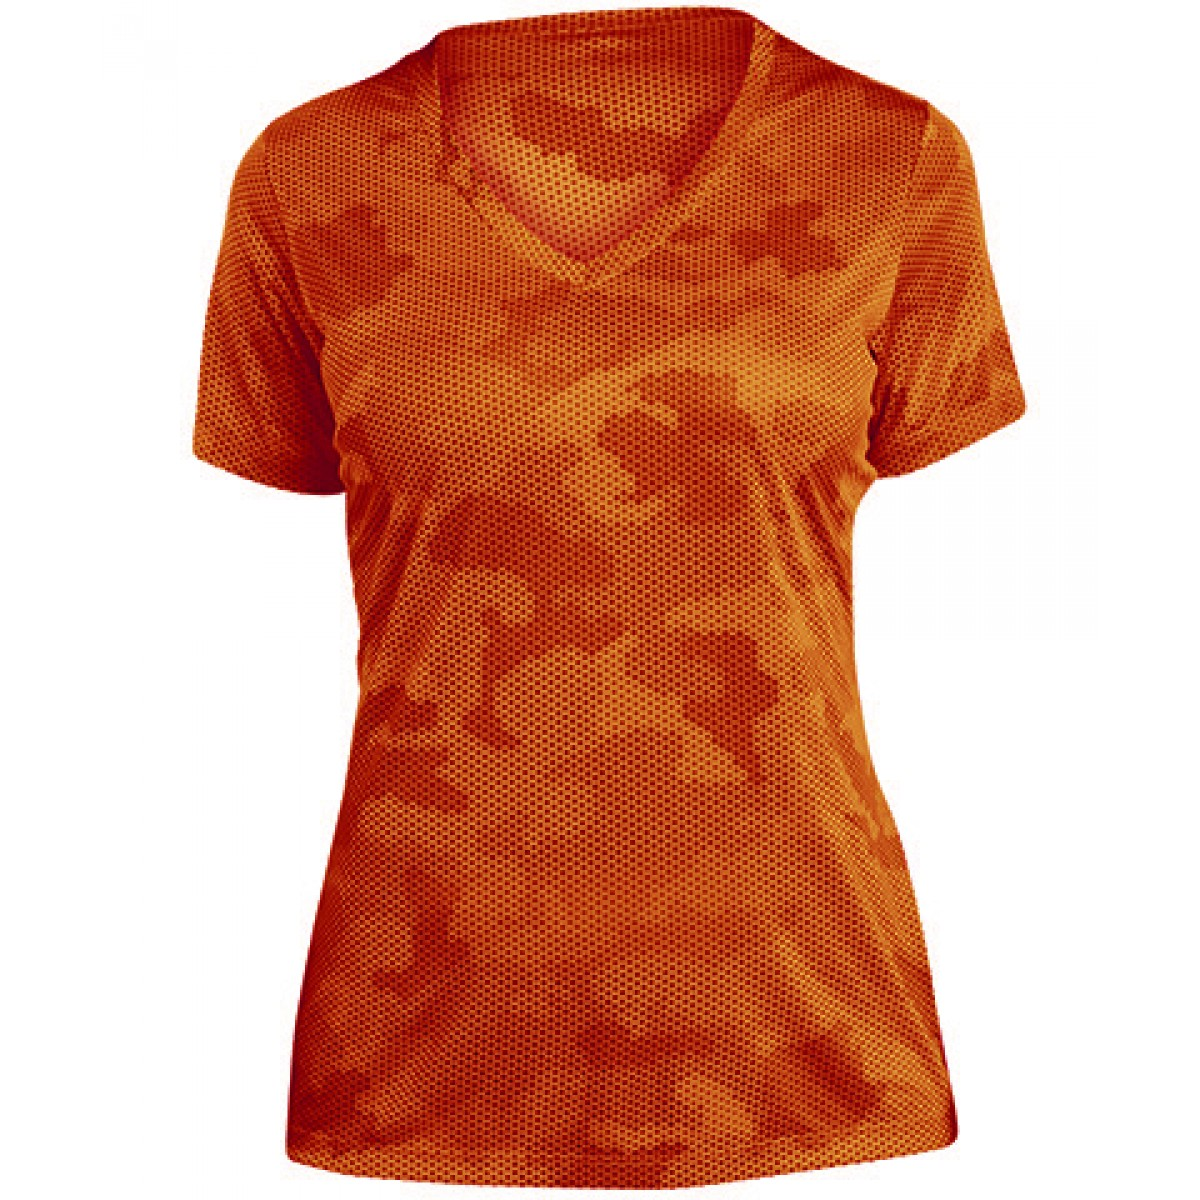 Ladies CamoHex V-Neck Tee-Orange-L